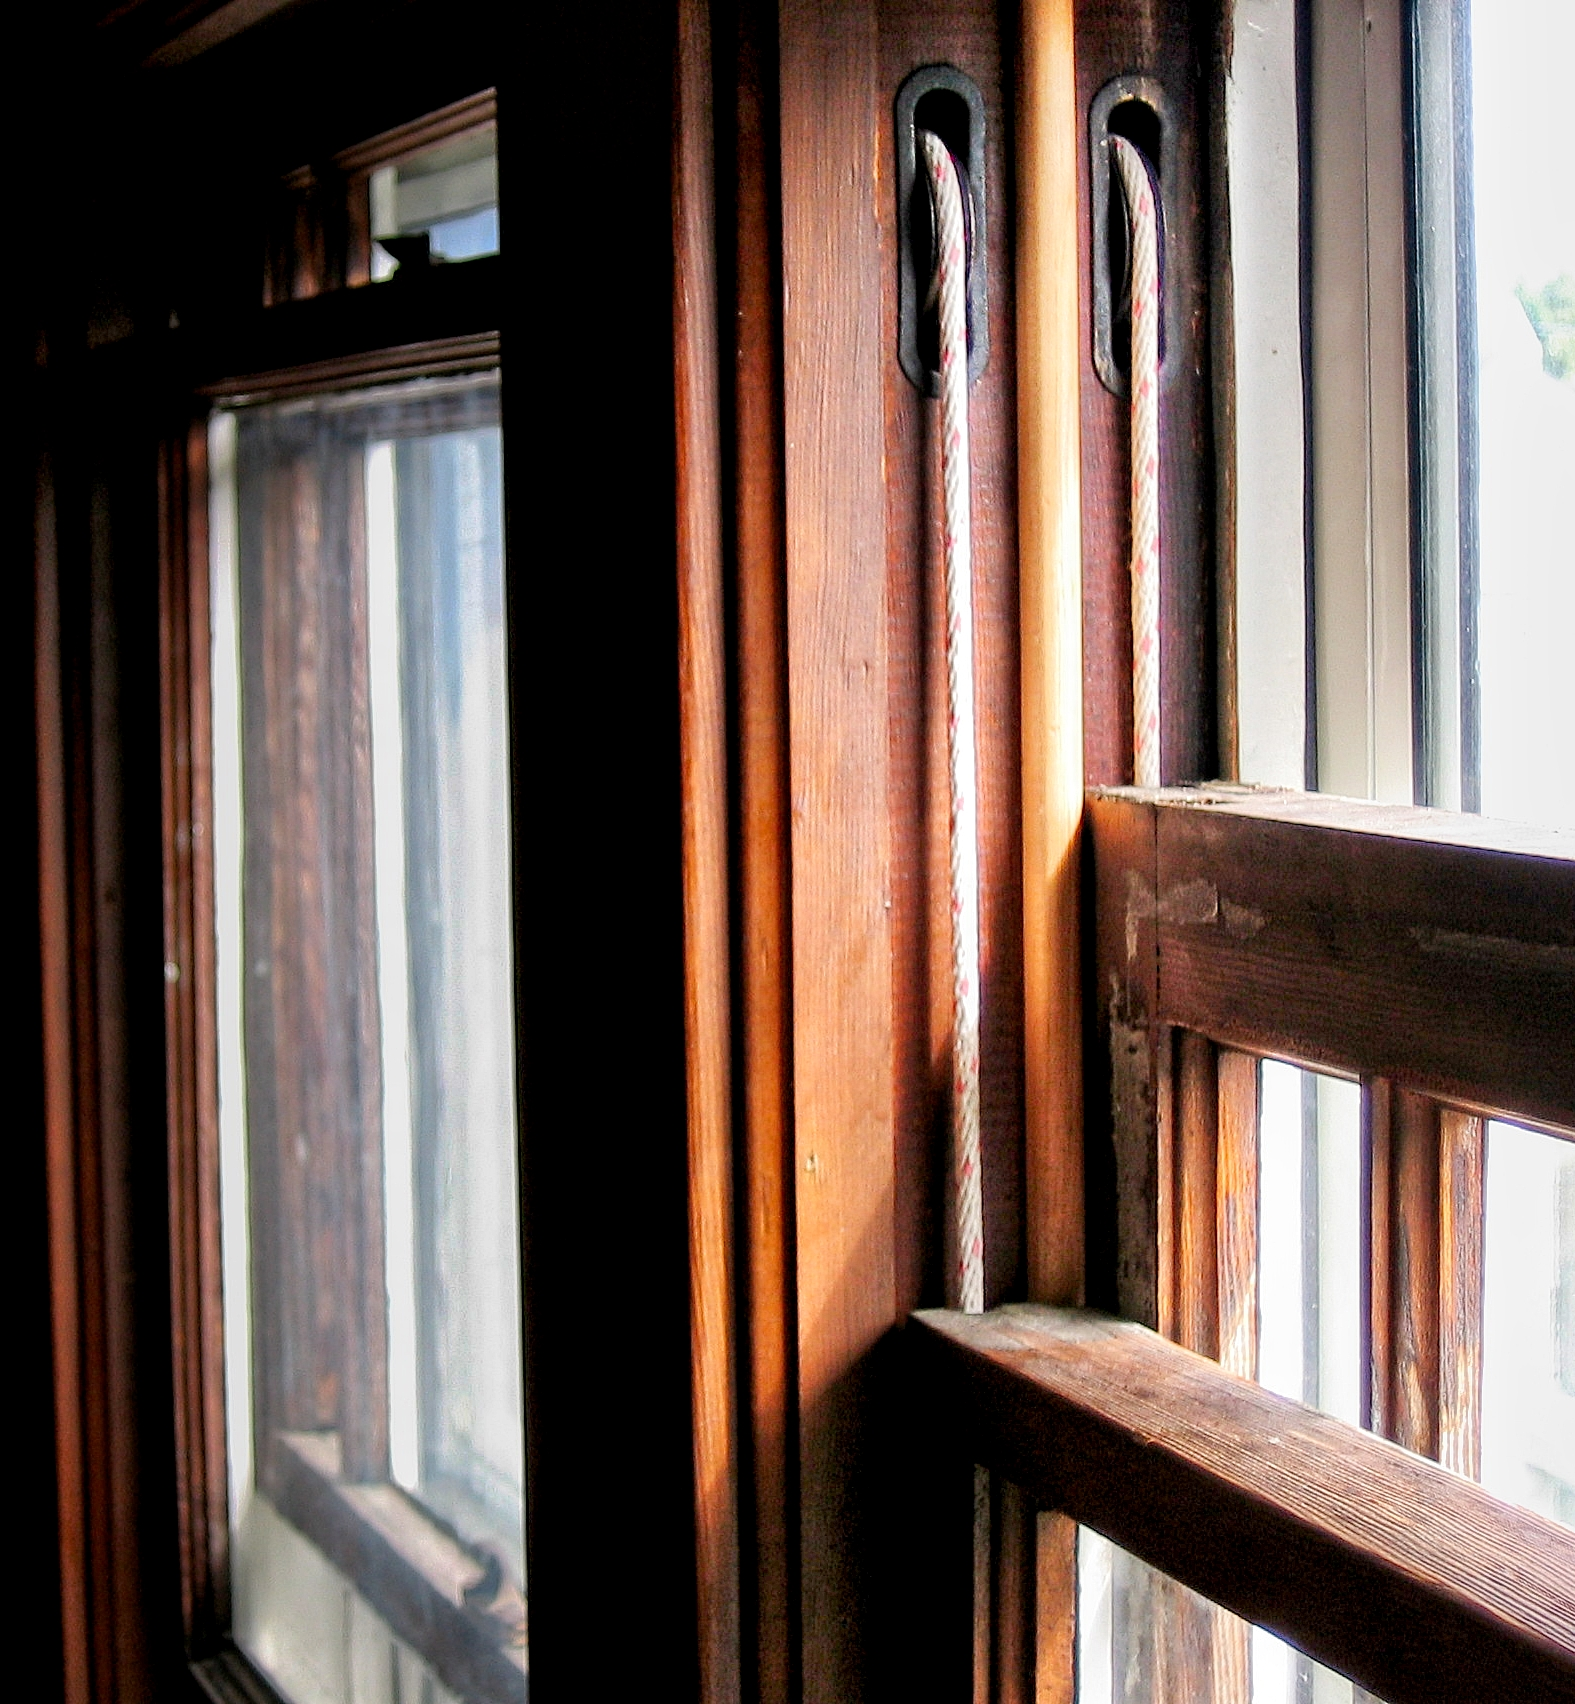 After. This window is now equipped with new, strong sash cords. And both sash will open again.